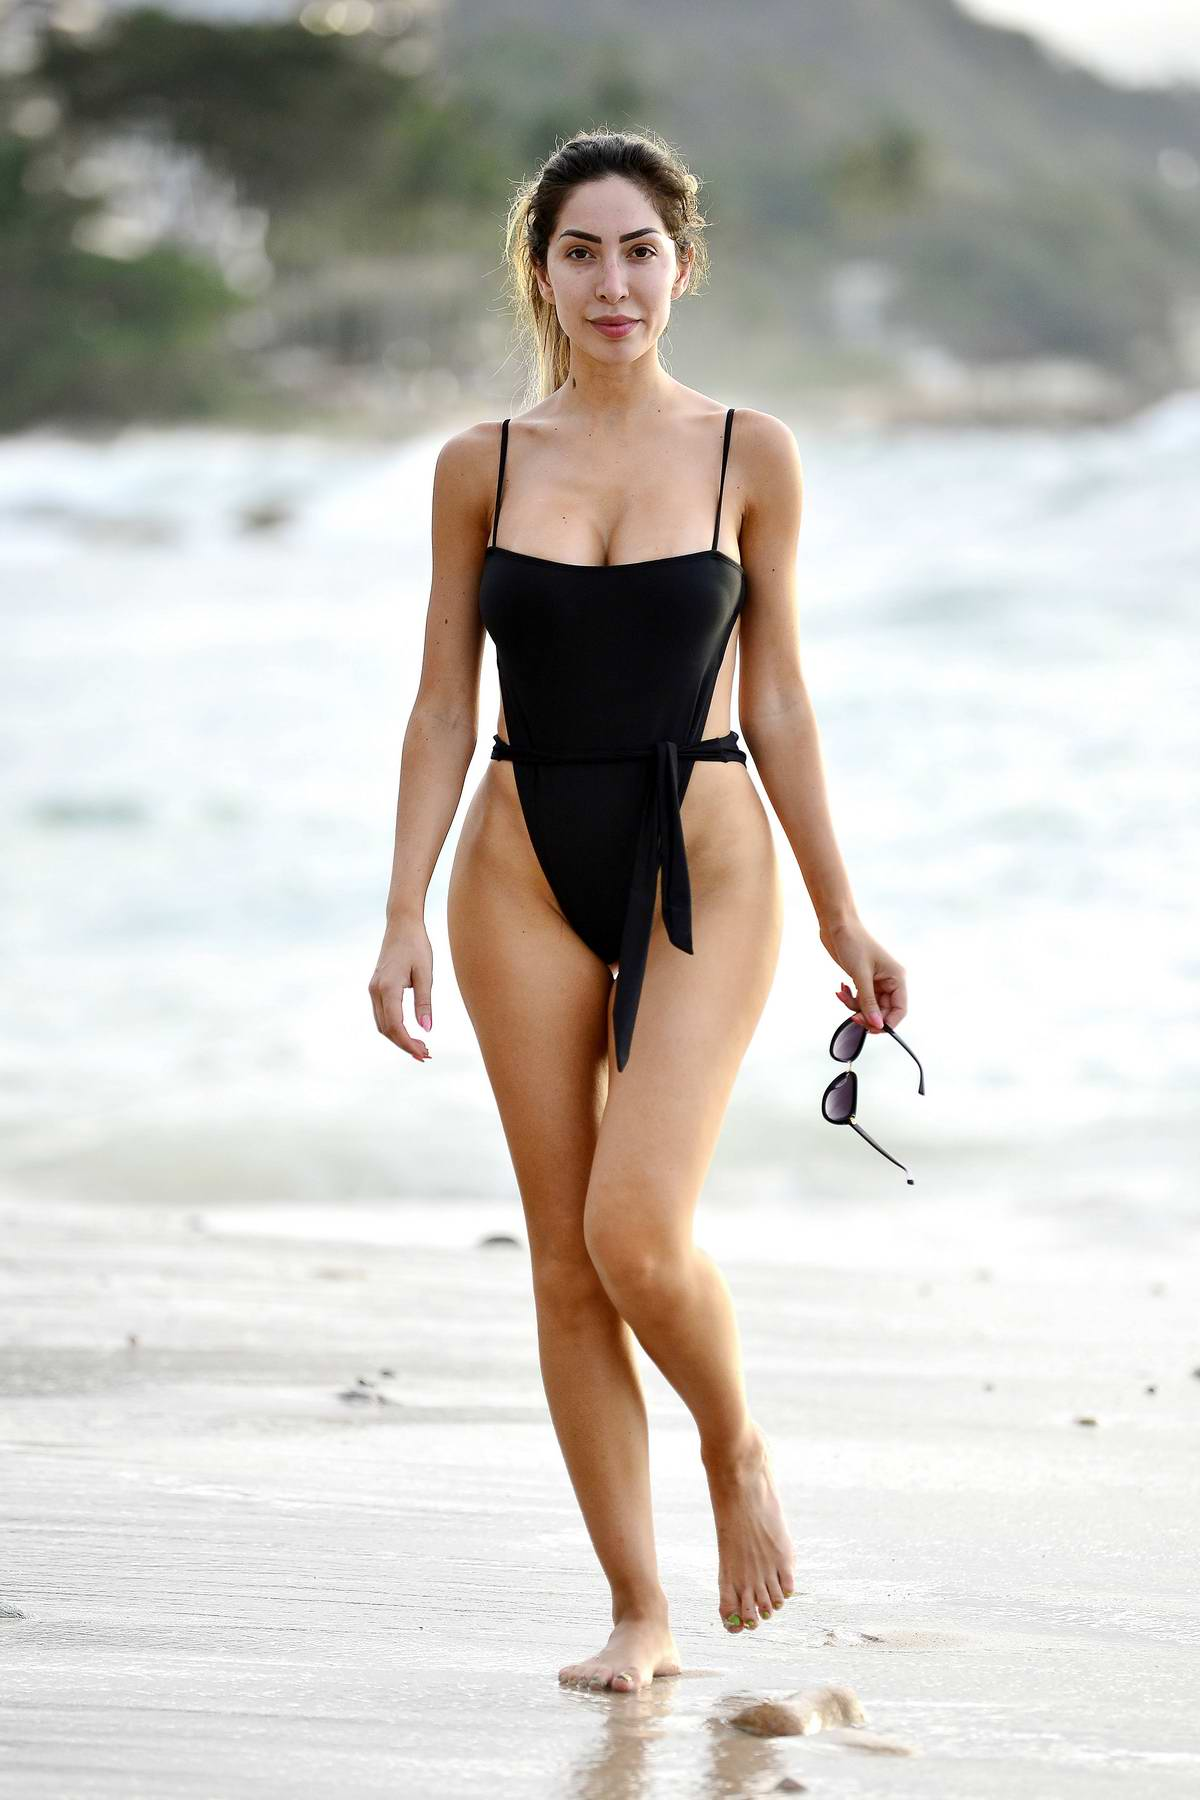 Farrah Abraham frolics at the beach in a black swimsuit during her vacation in Puerto Vallarta, Mexico